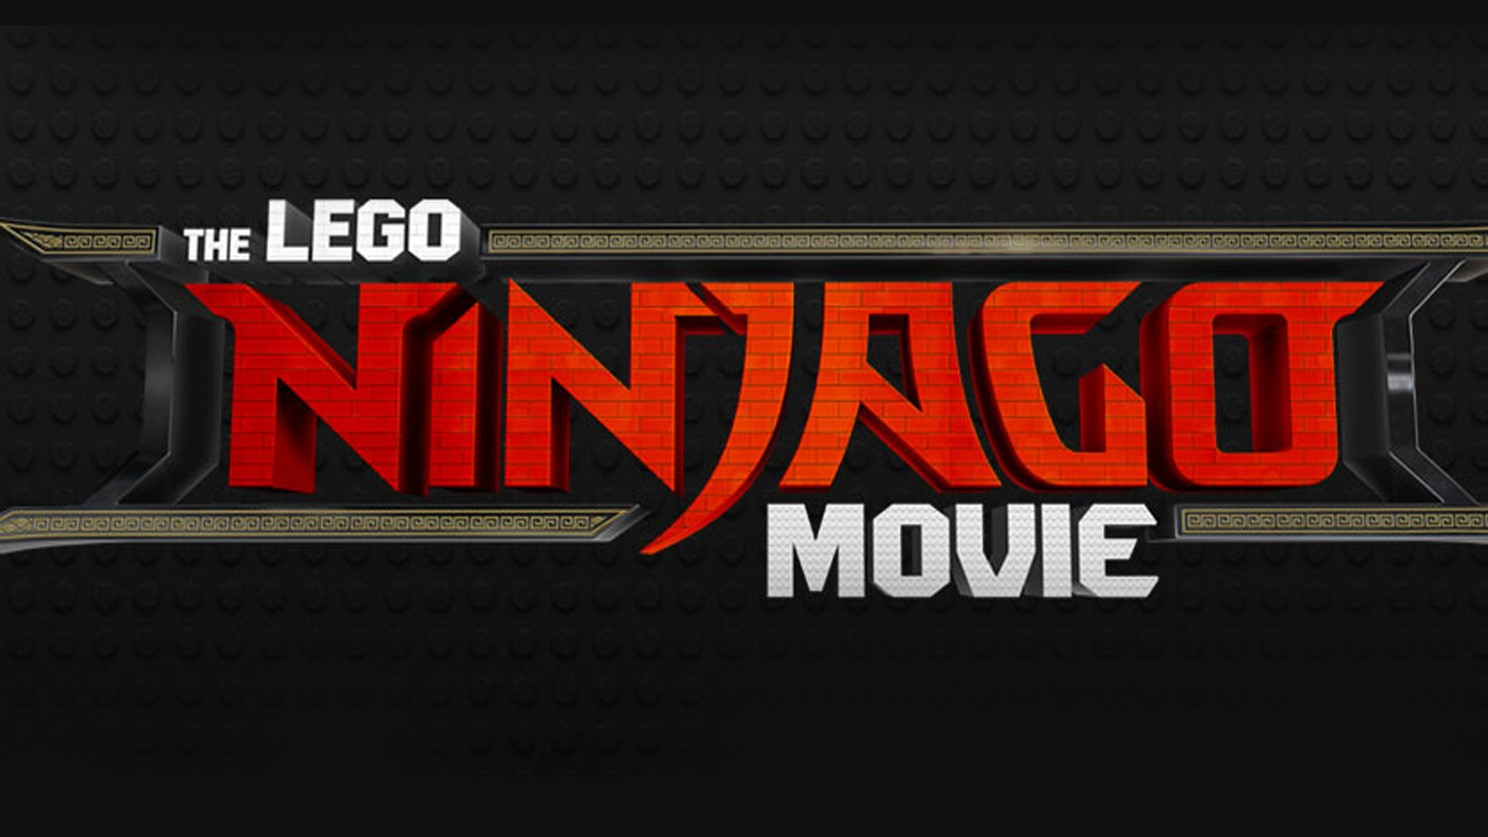 The lego ninjago movie brick architect - Lego ninjago logo ...